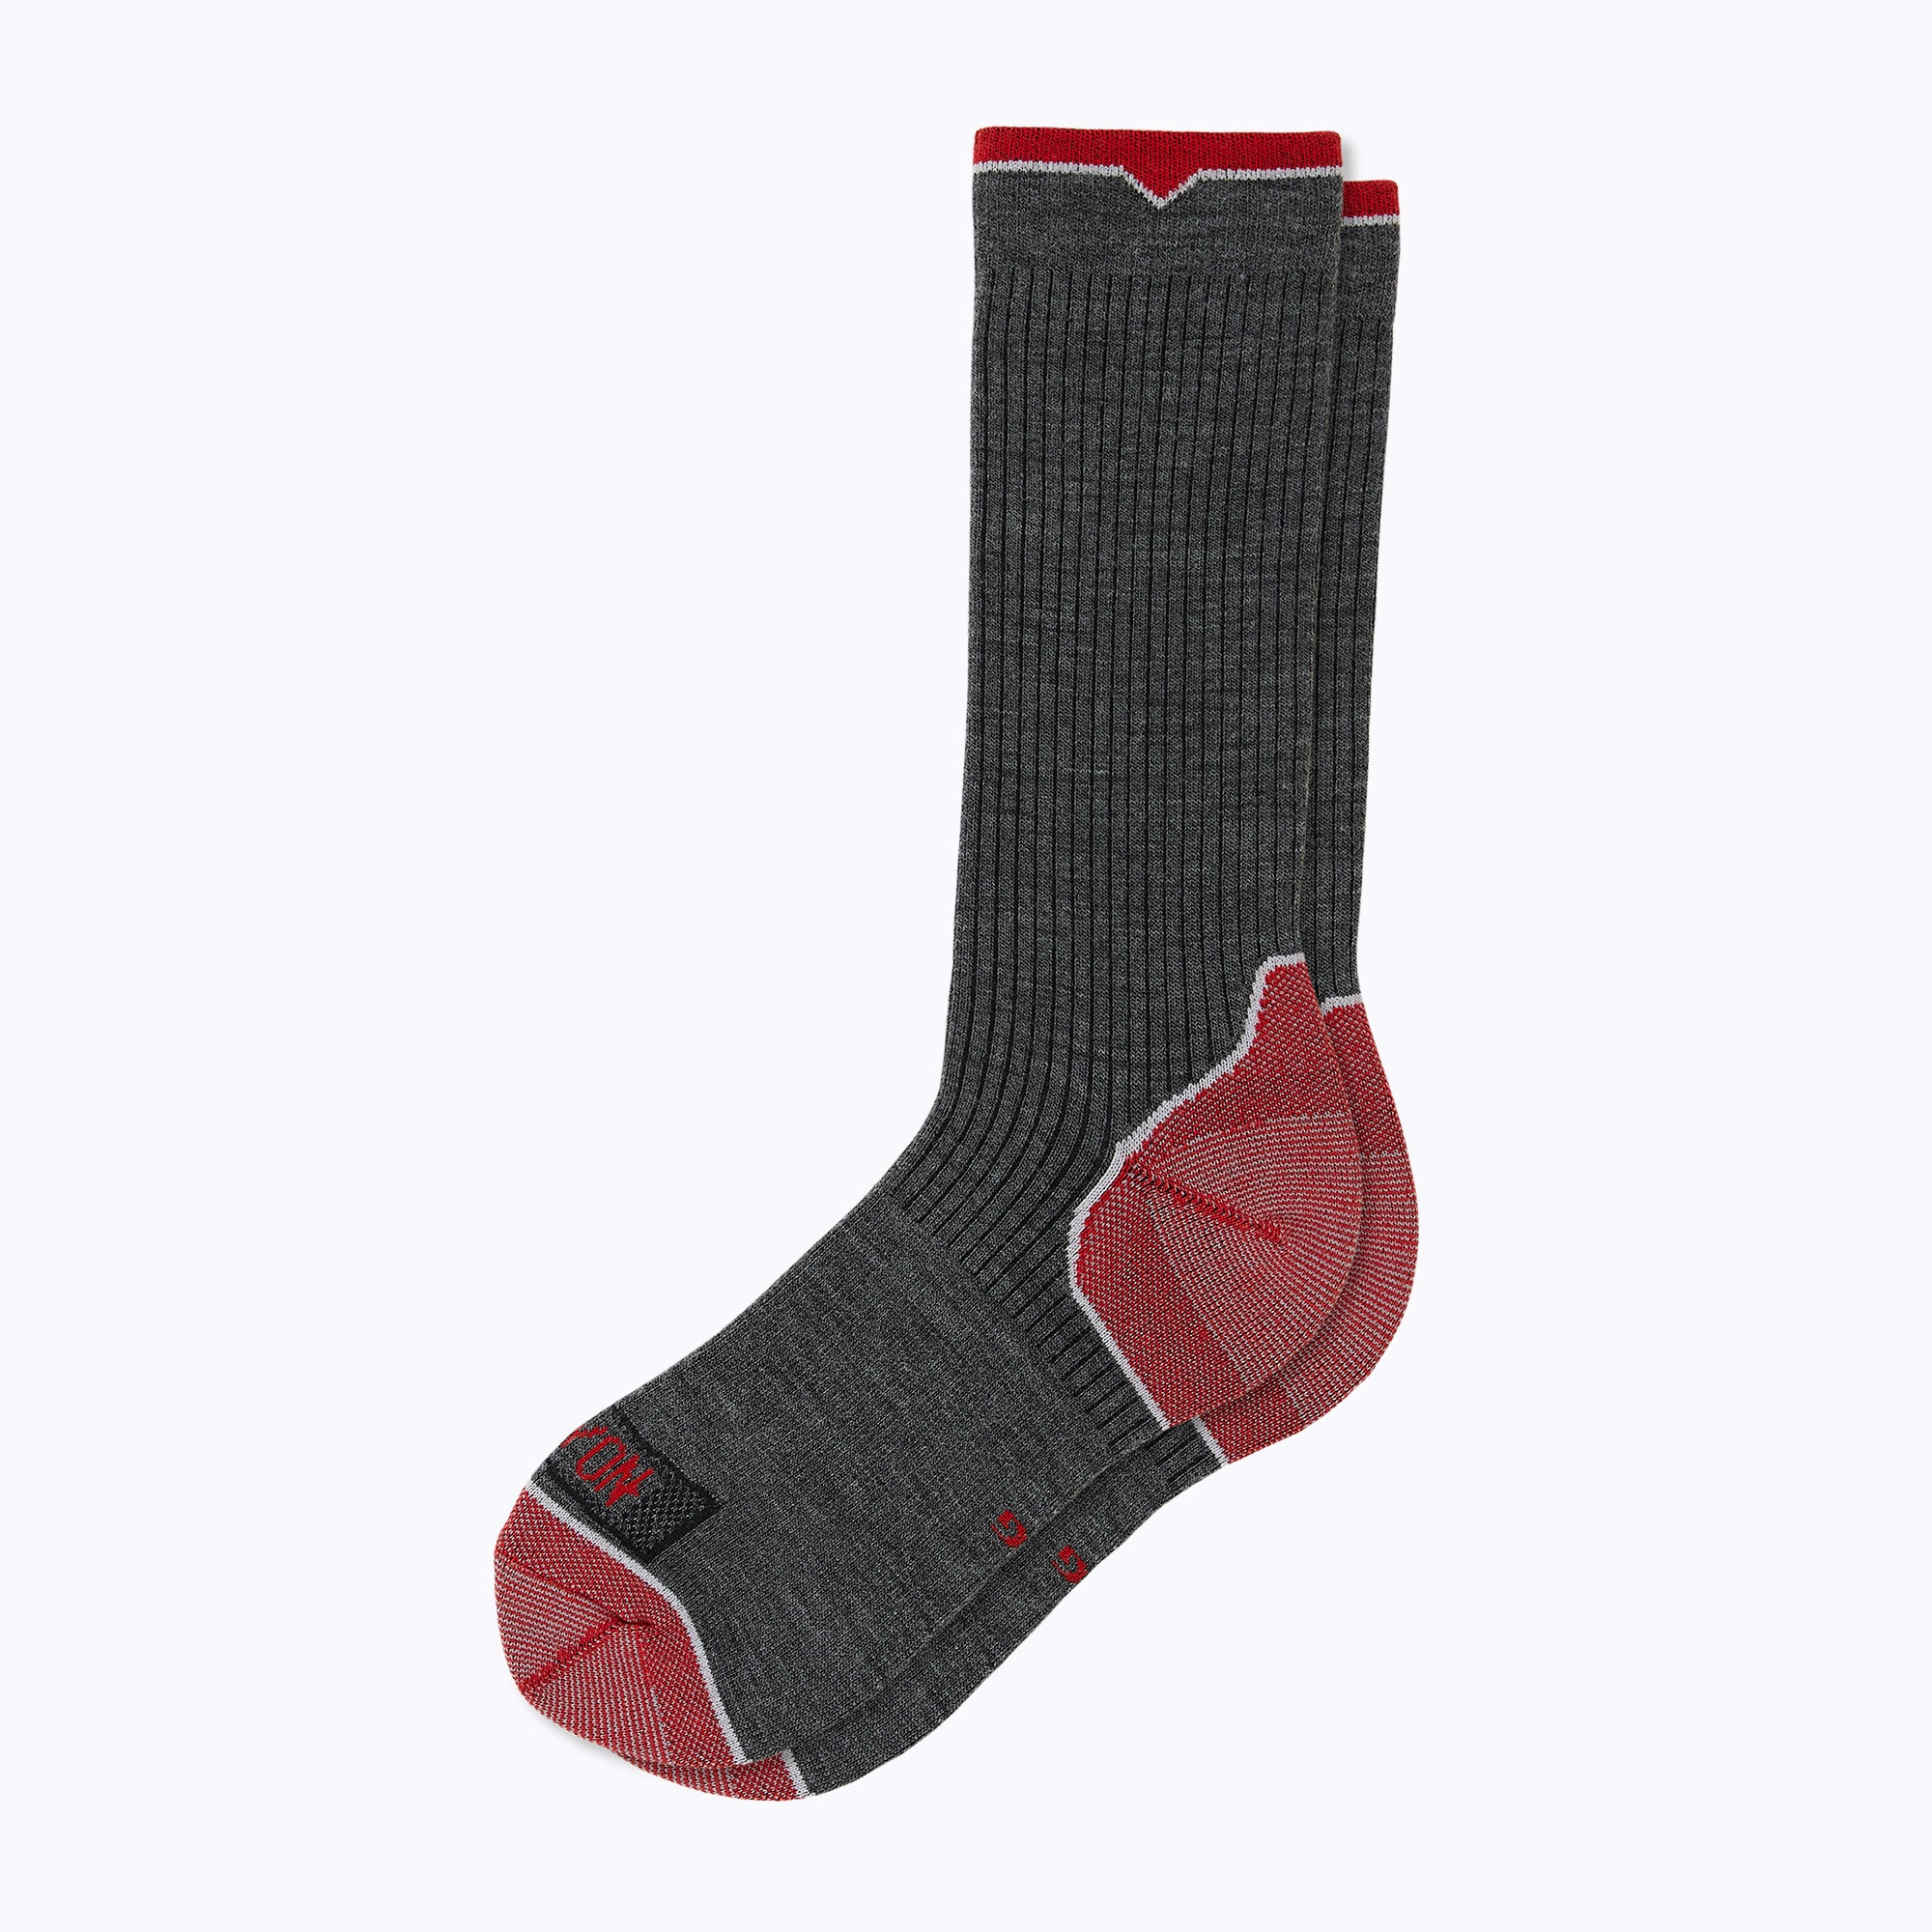 Essential Men's Crew Socks - Americana by Canyon Socks